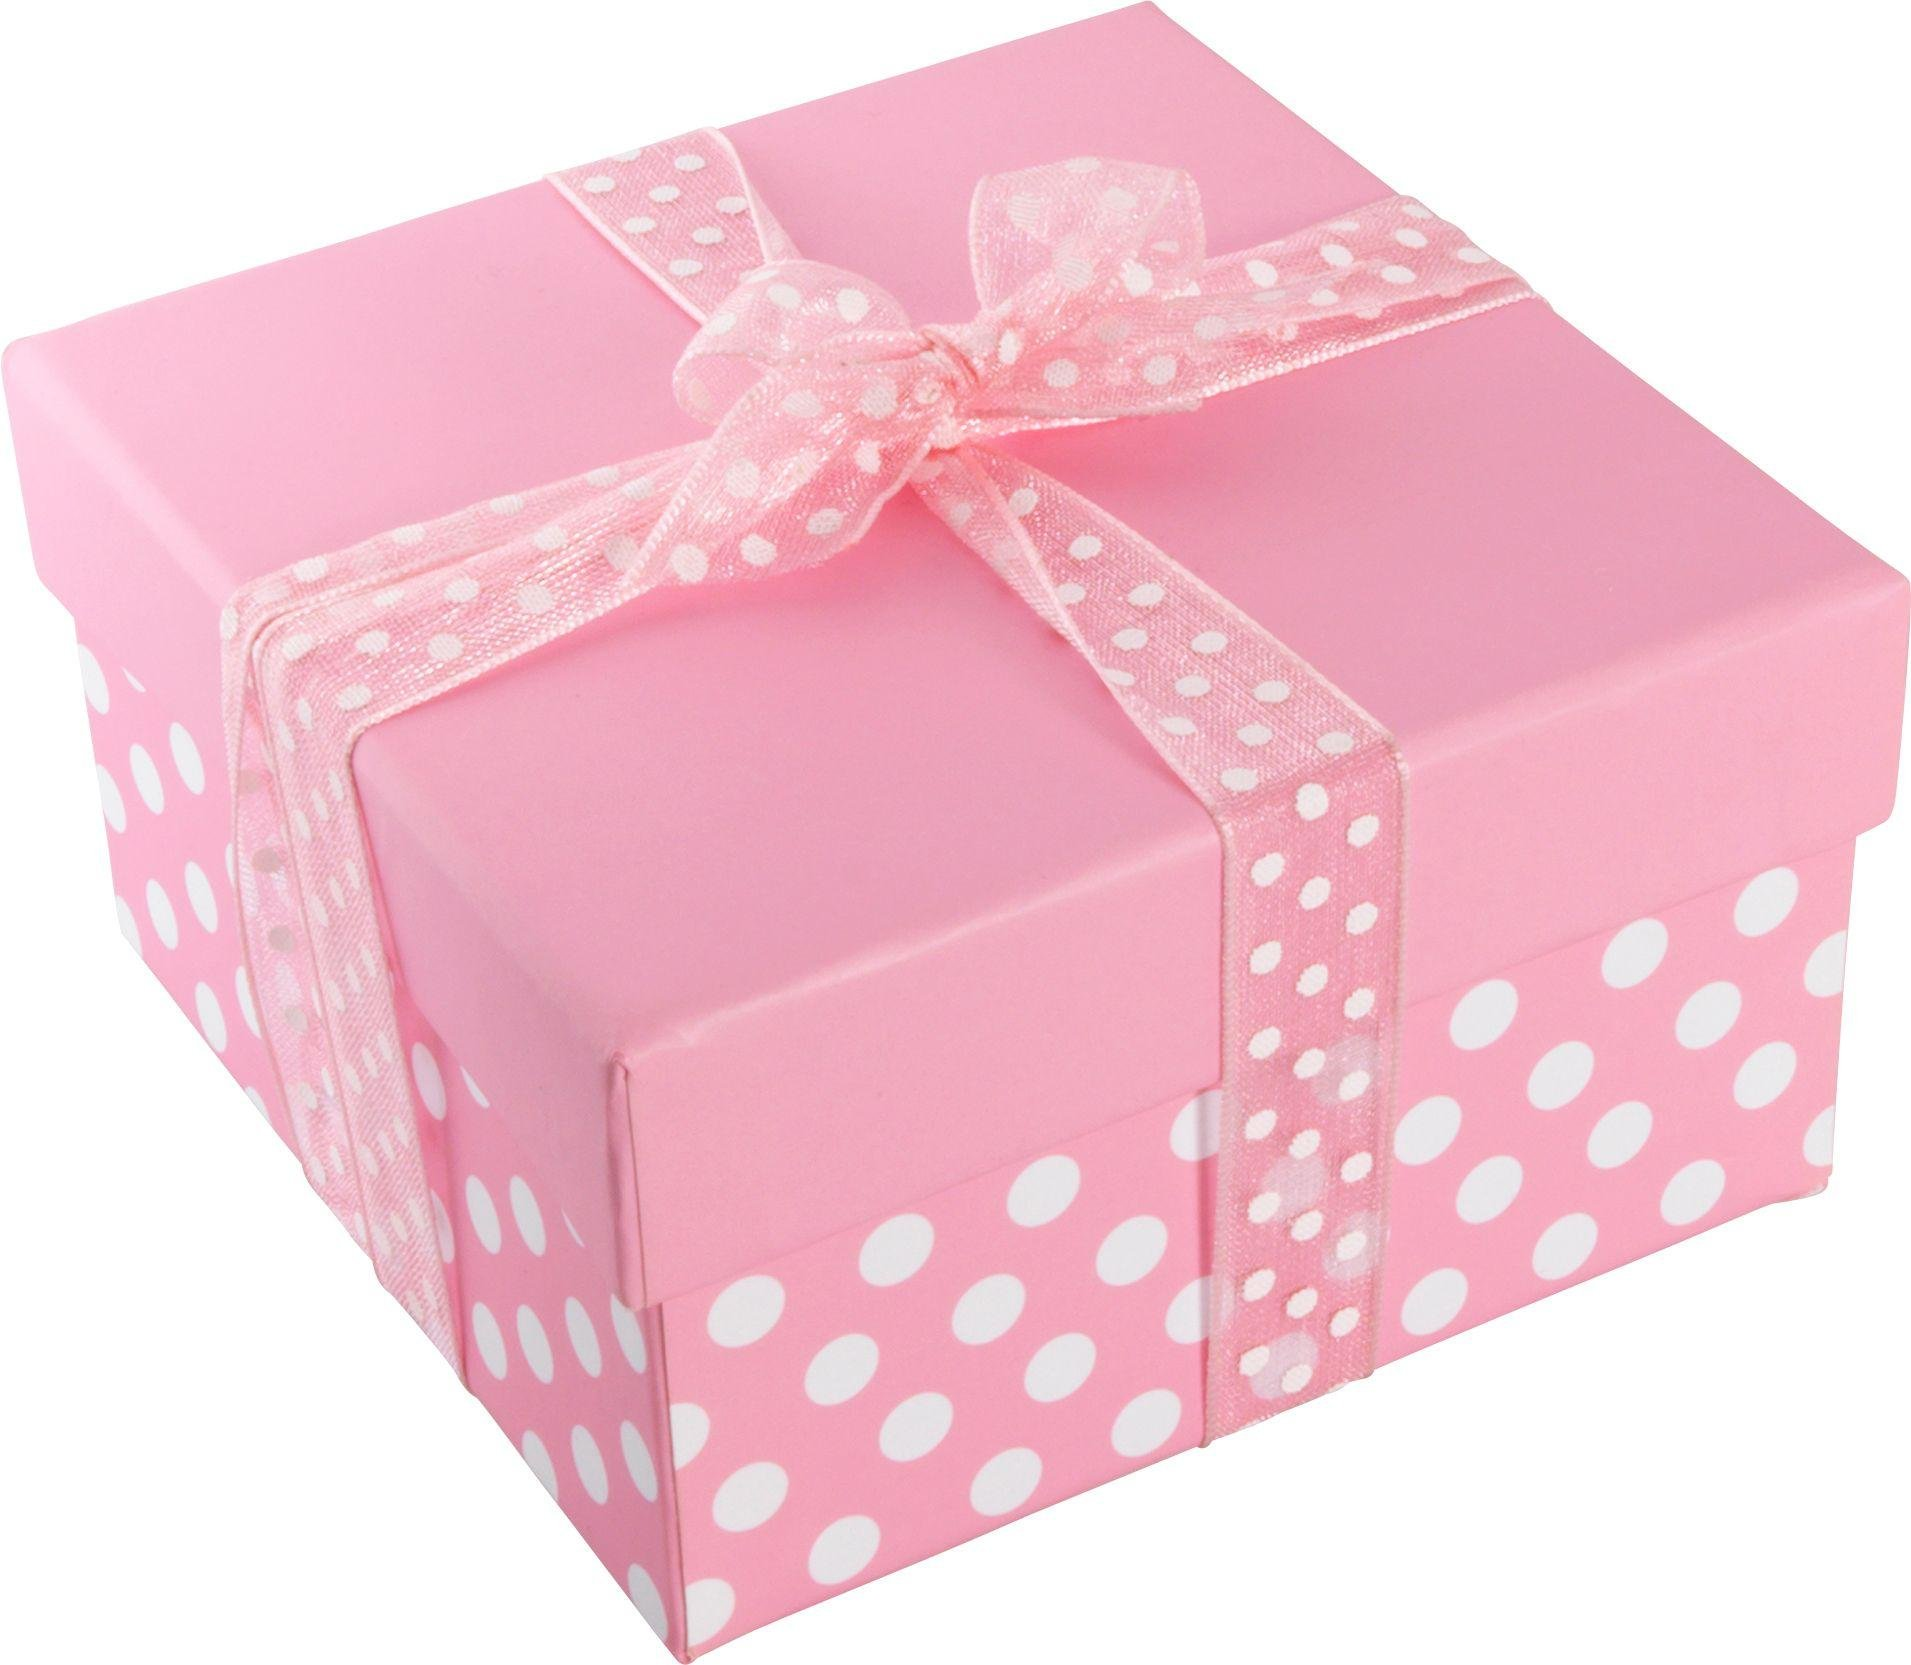 Children's Jewellery Box - Pink